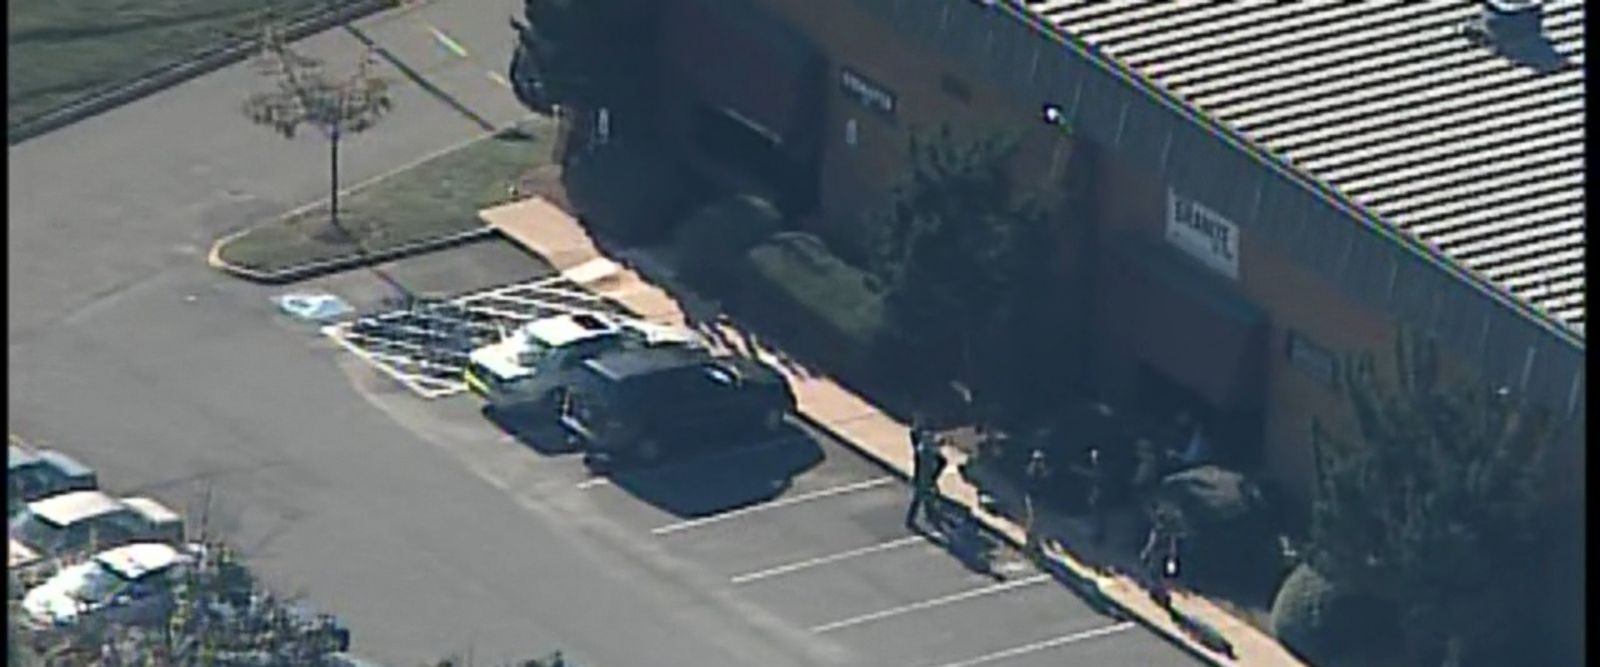 Deputies in Harford County, Maryland, are investigating a shooting inside a business complex at Emmorton Business Park.